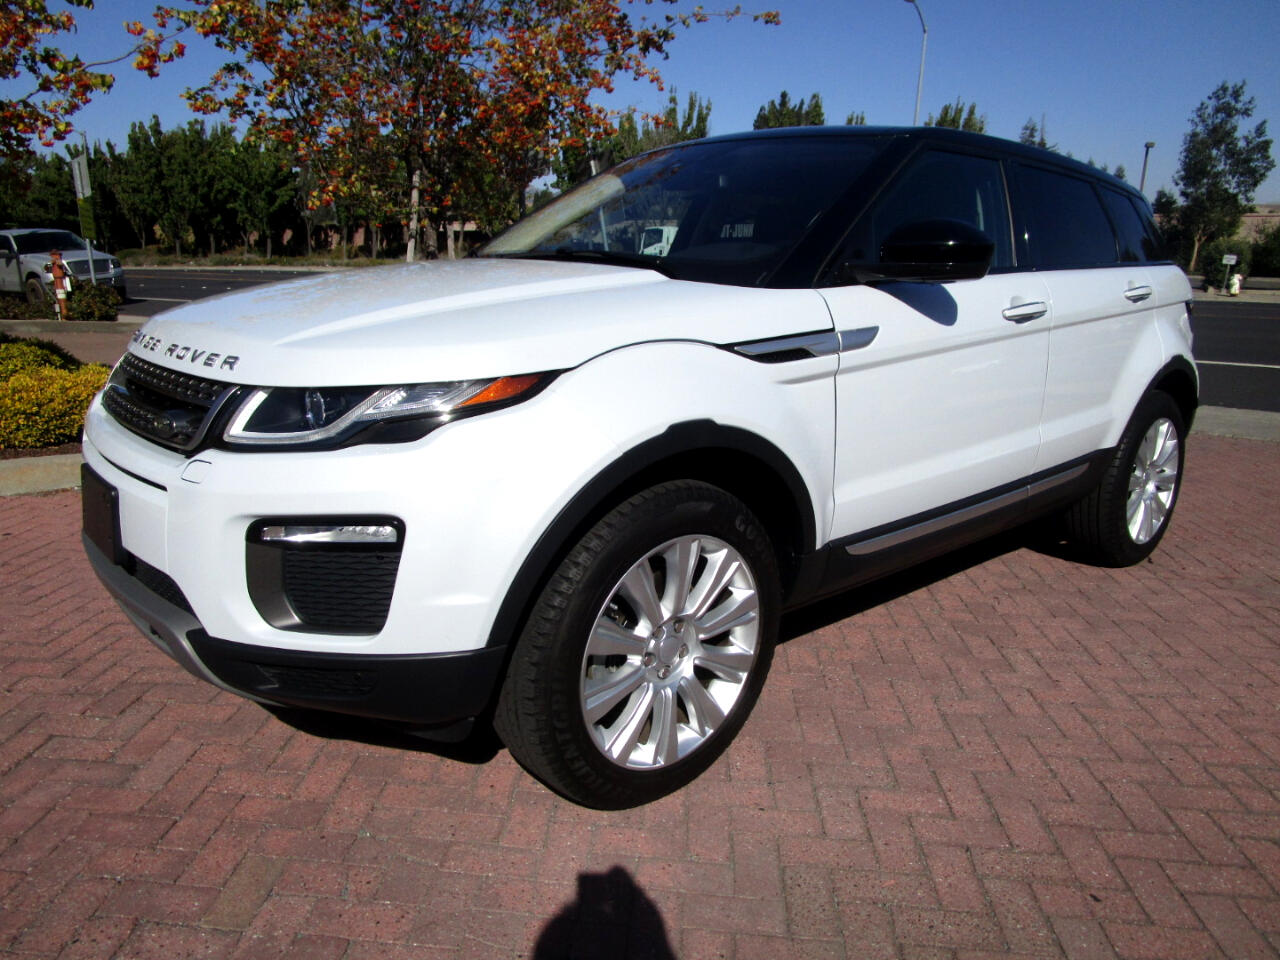 2016 Land Rover Range Rover Evoque 2.0 TURBO HSE AWD**NAVIGATION**HEAT SEATS**PANO**